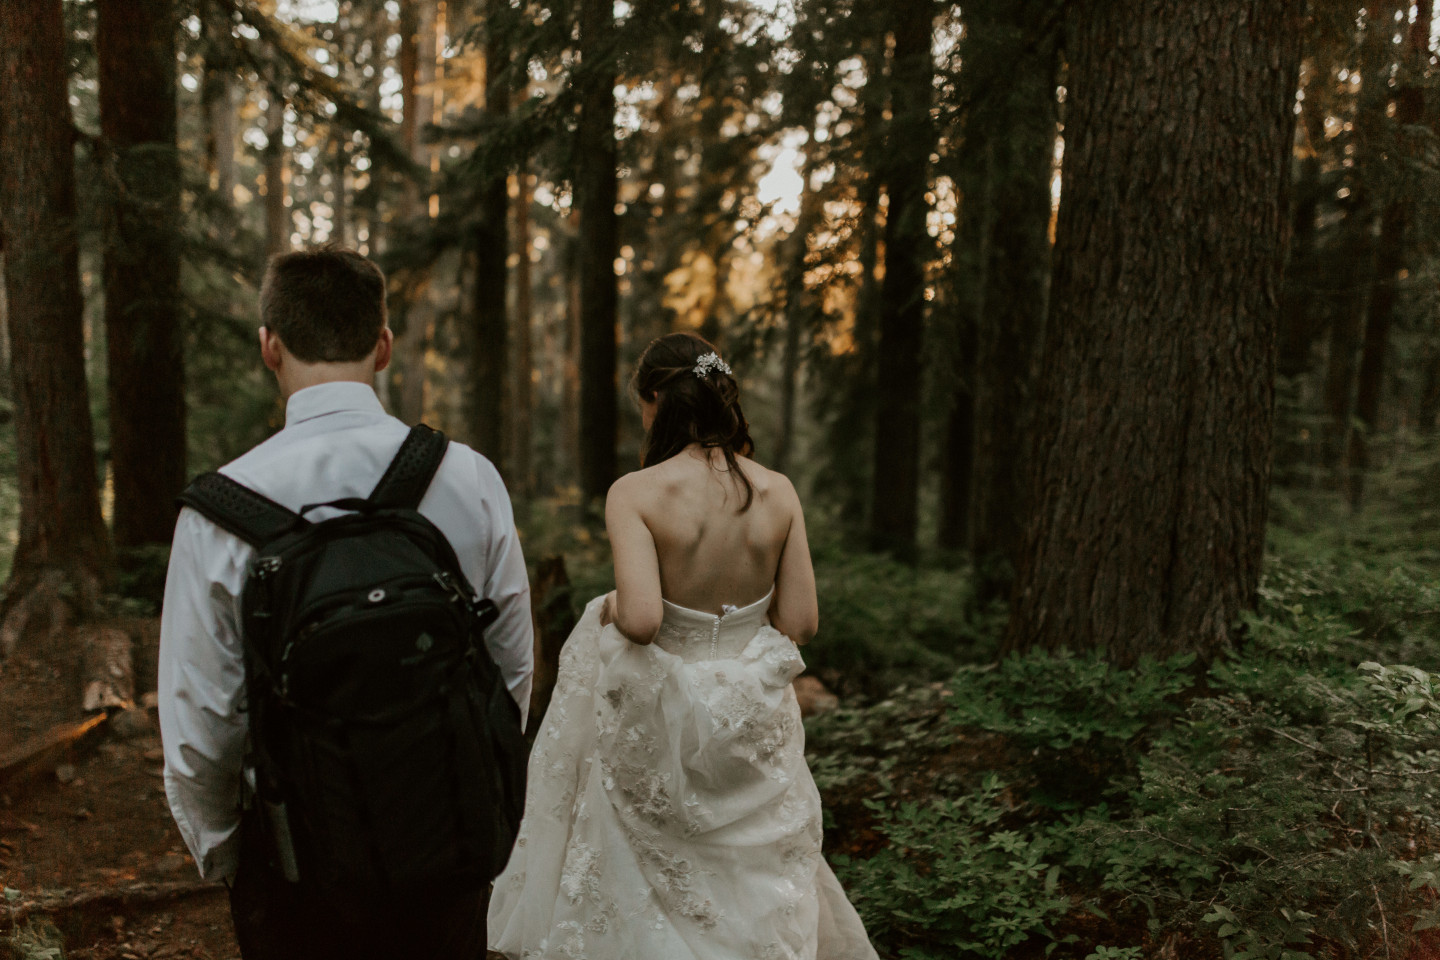 Moira and Ryan adventuring through the woods. Adventure elopement wedding shoot by Sienna Plus Josh.